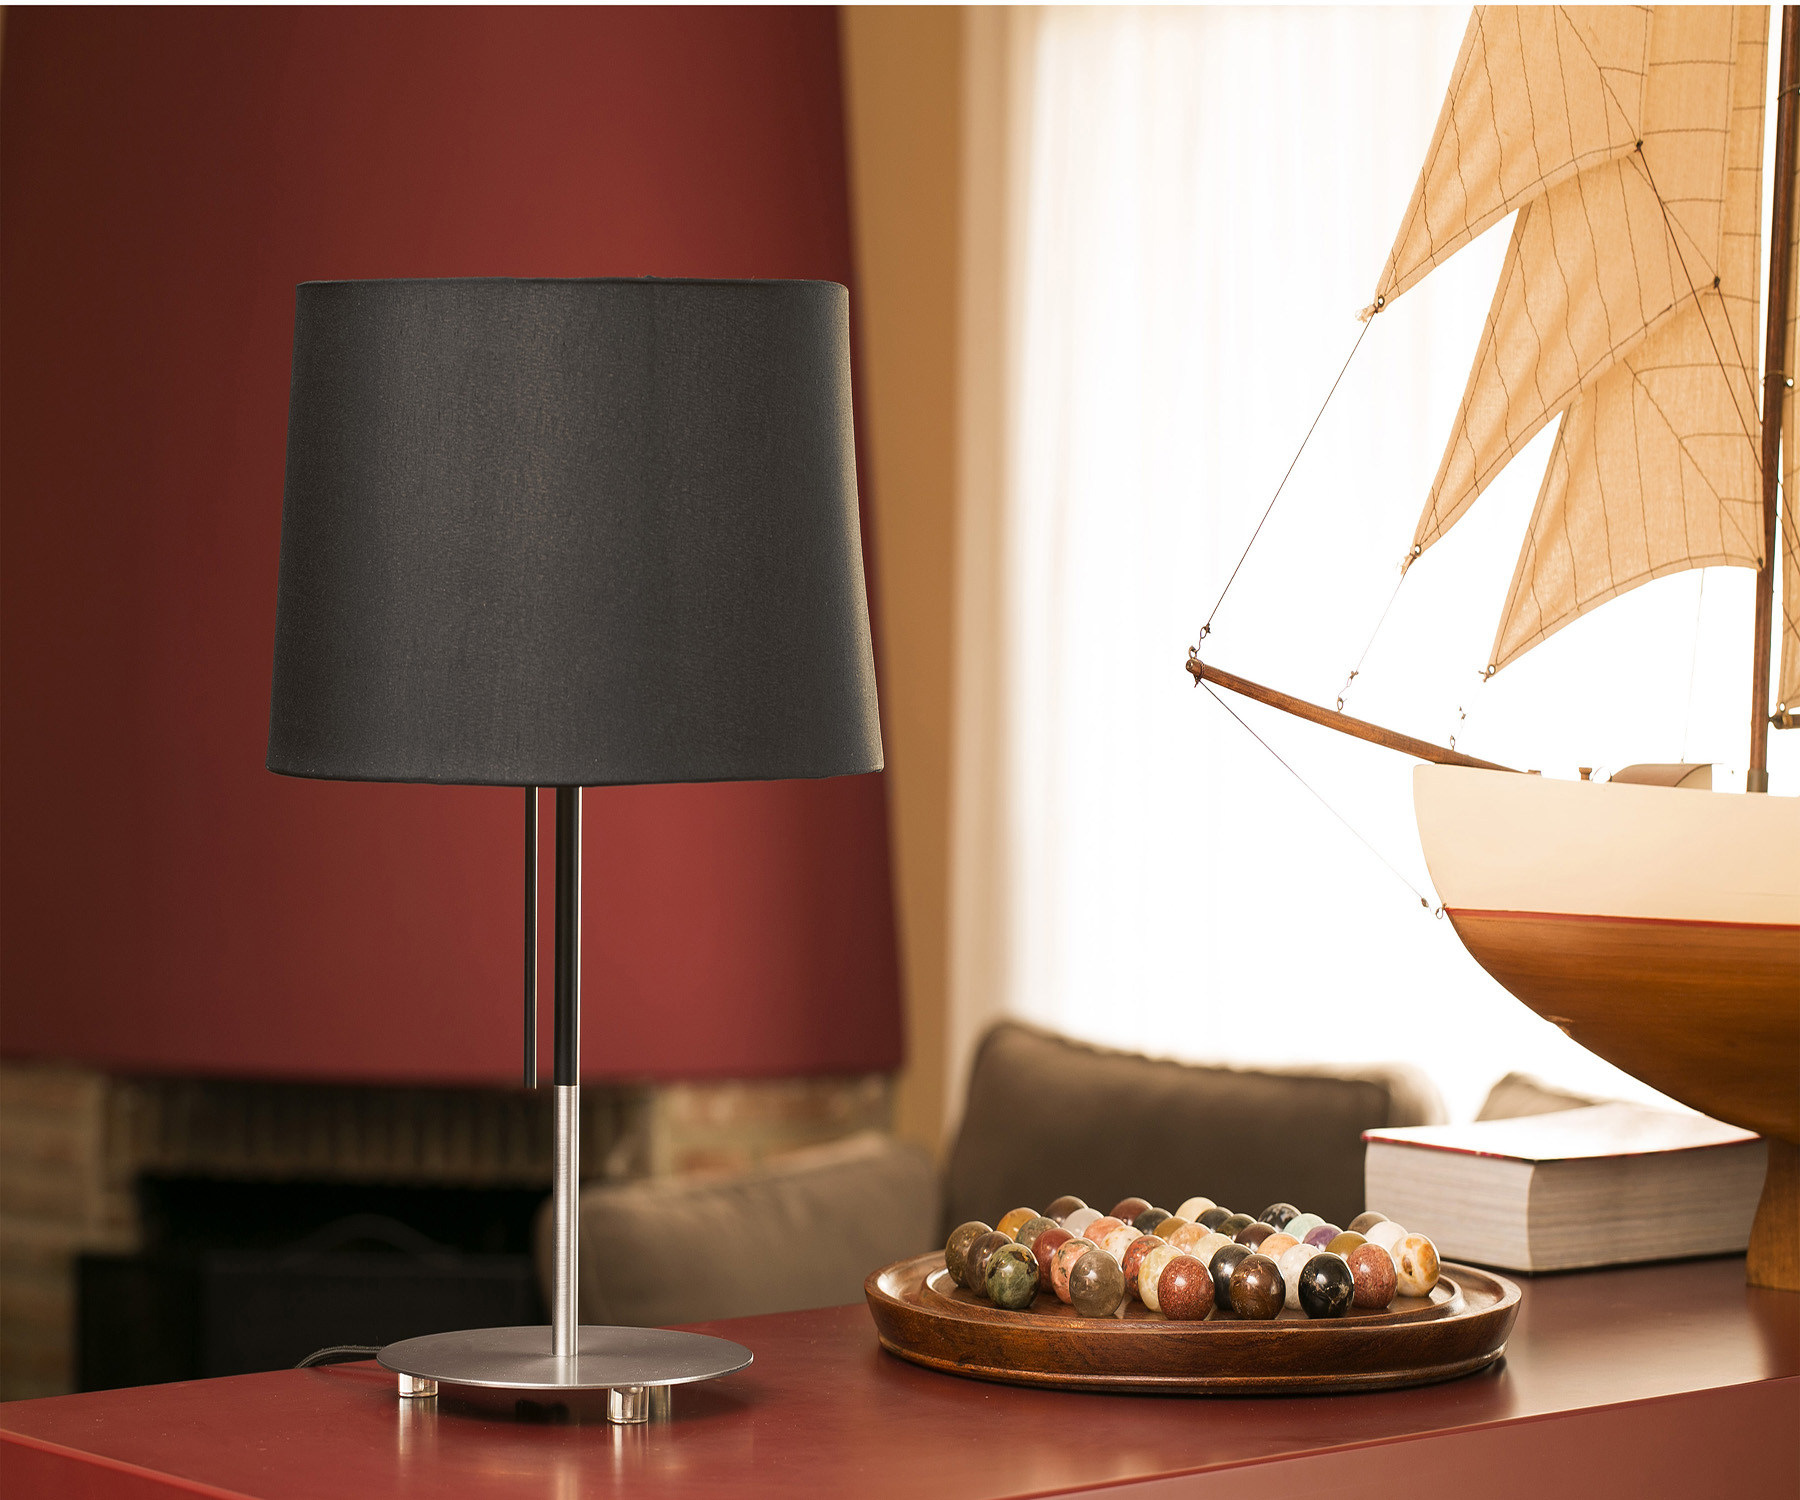 More information of VOLTA table lamp - Faro